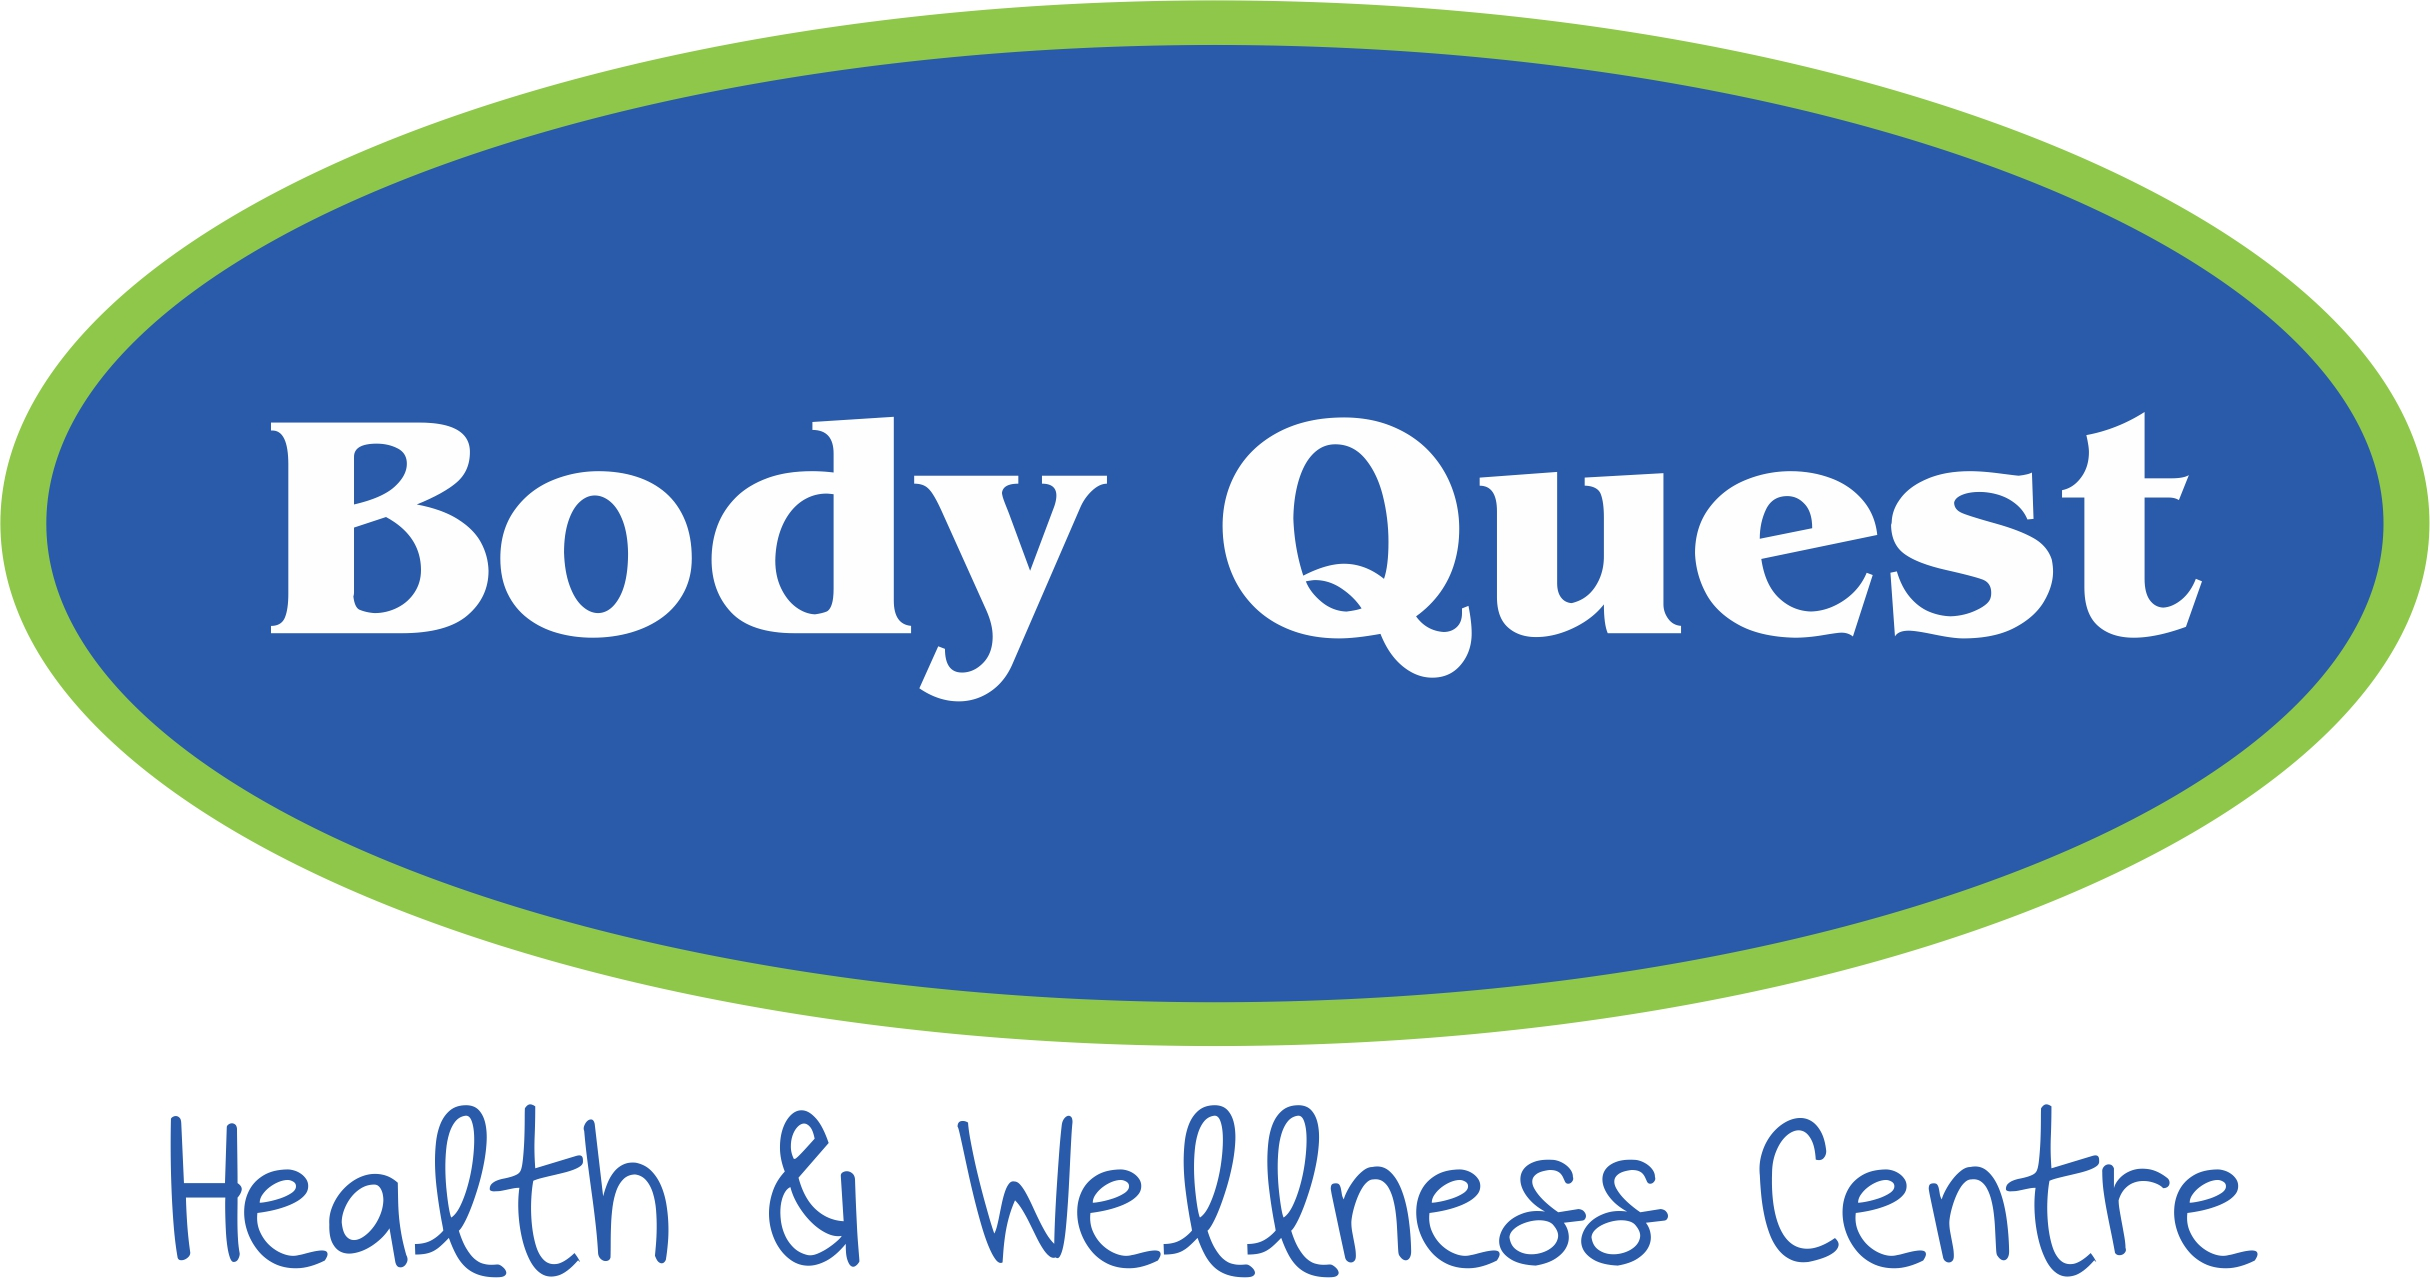 Body Quest logo